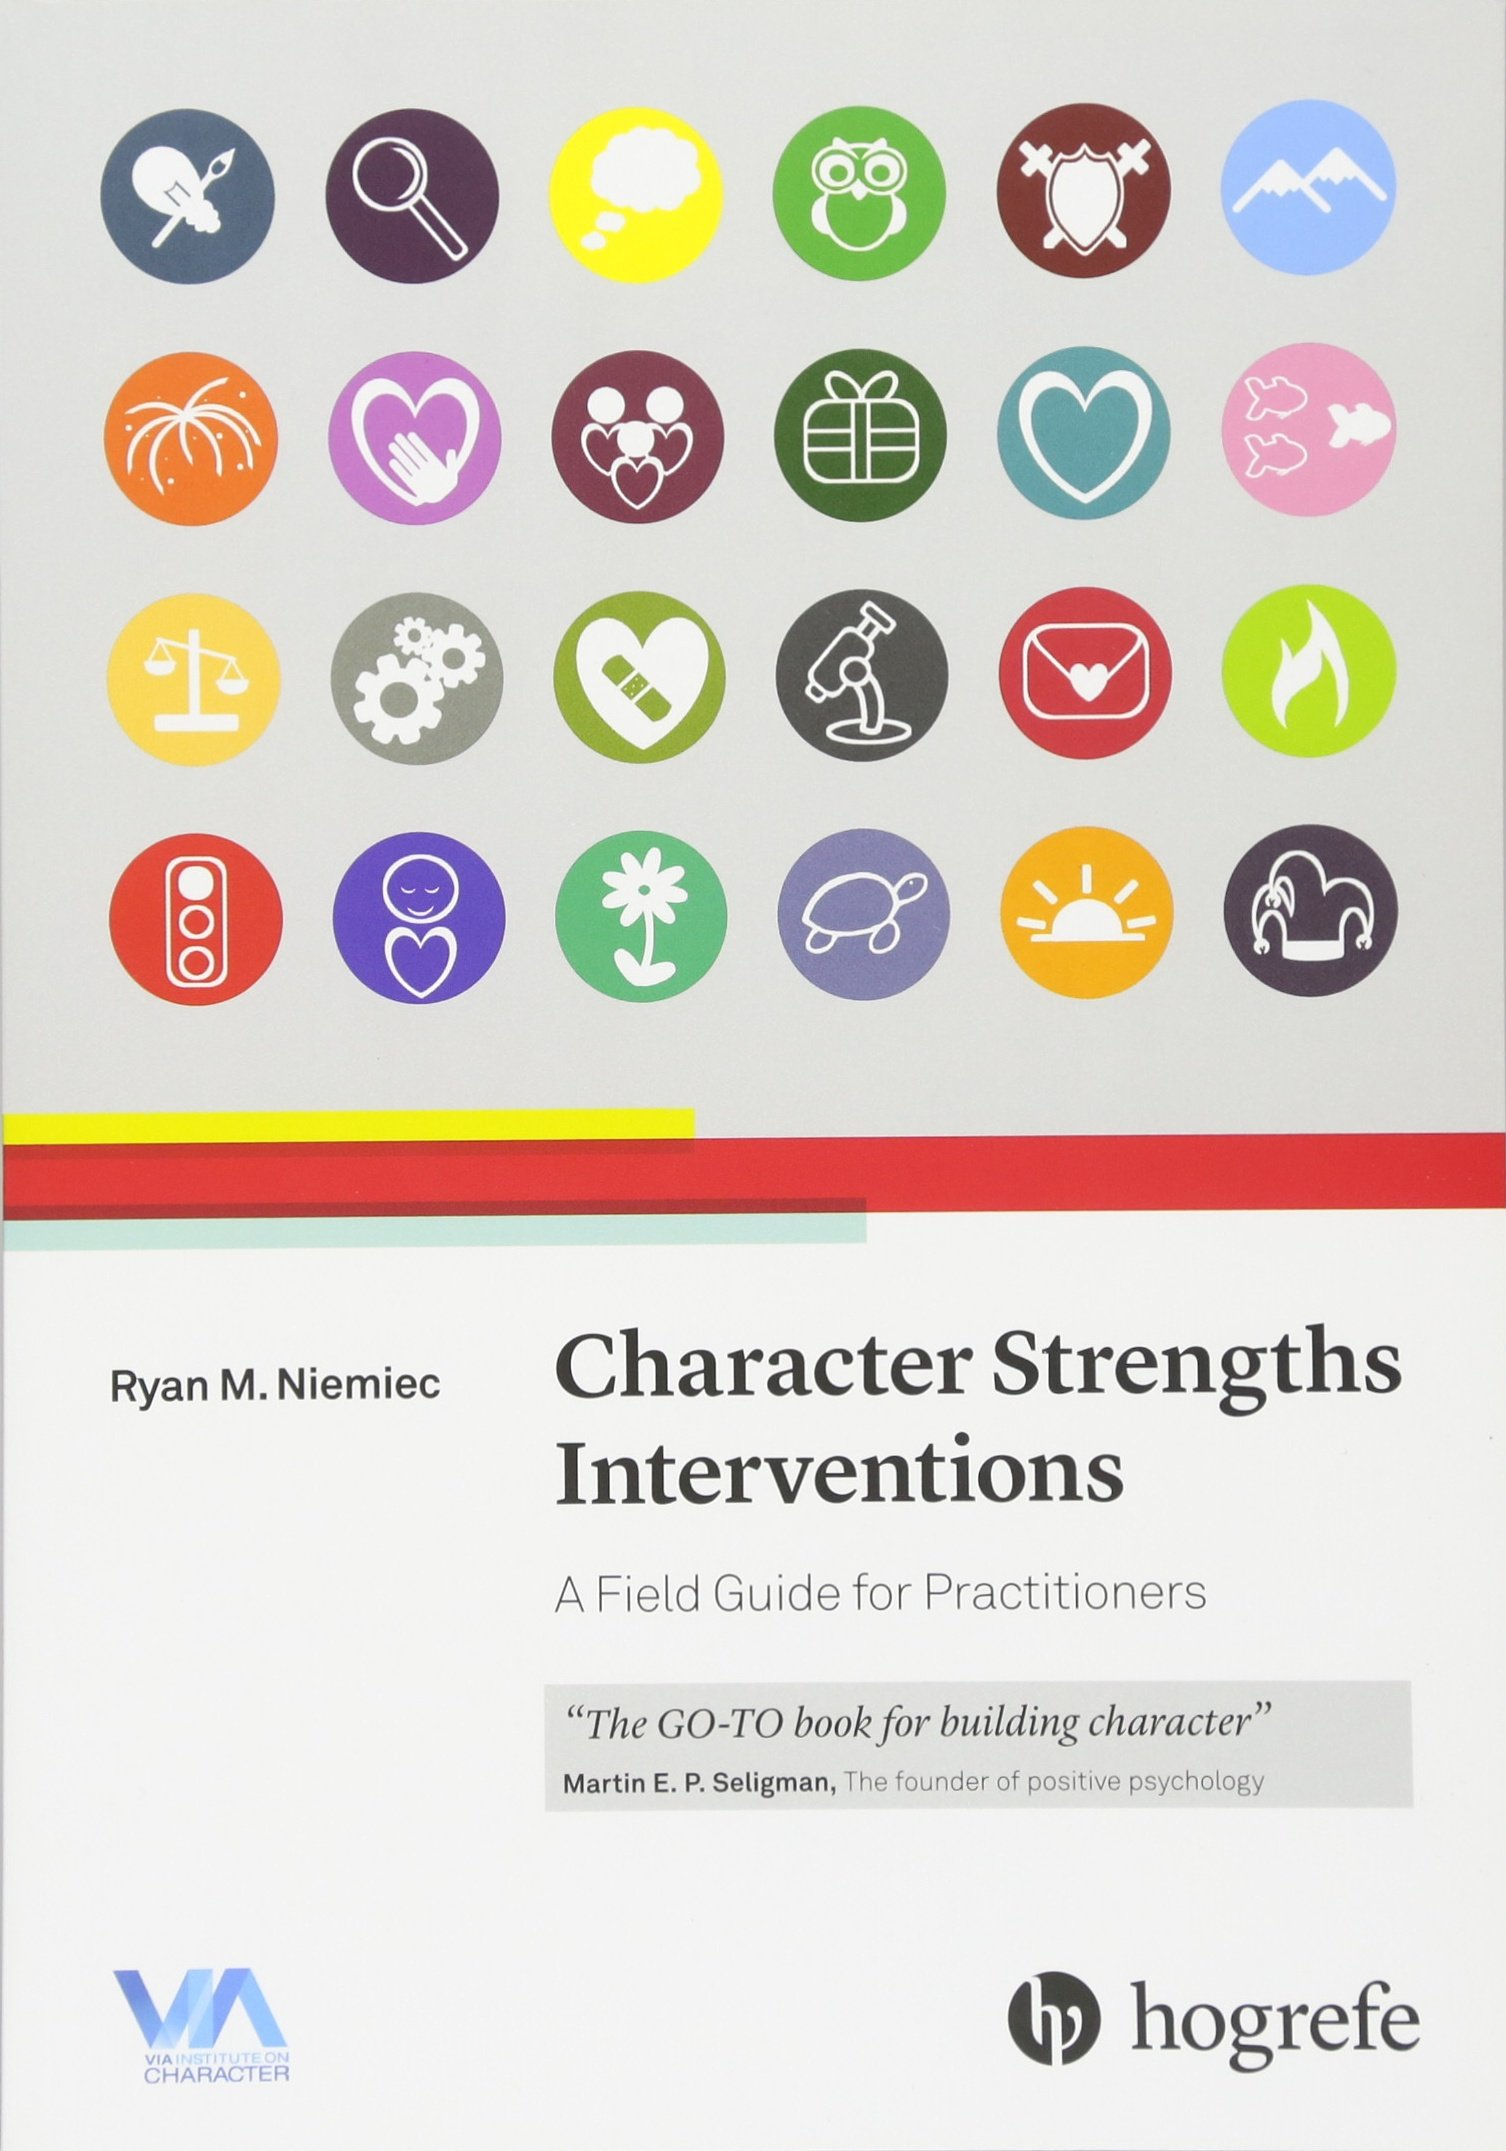 Image OfCharacter Strengths Interventions: A Field Guide For Practitioners 2017